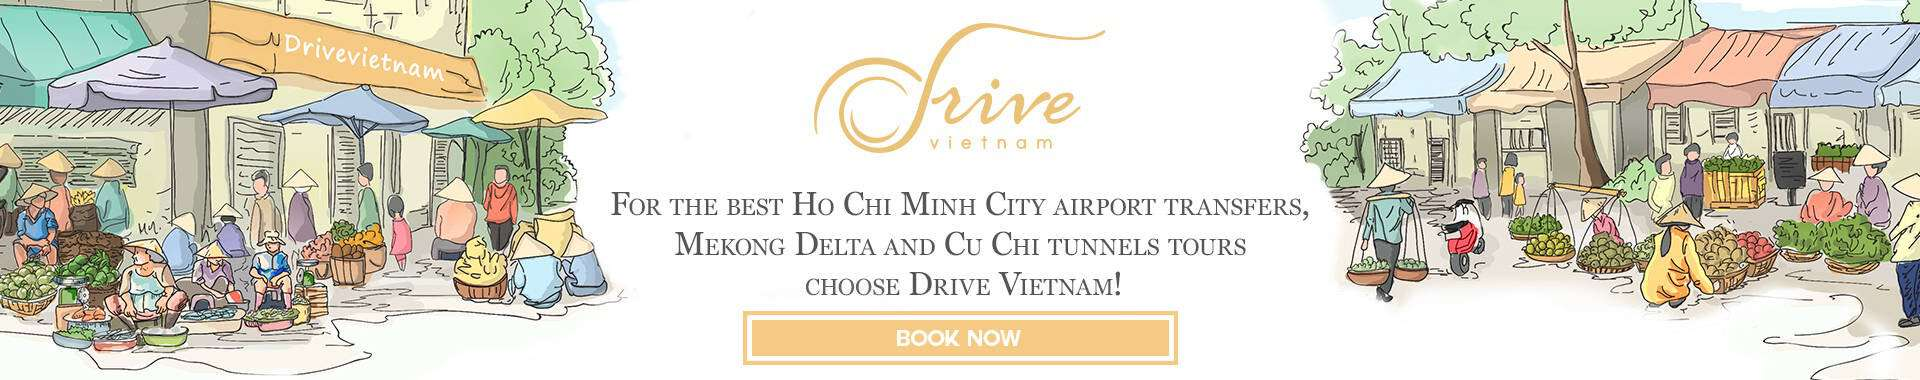 Drive Vietnam Book Now Airport Pickups